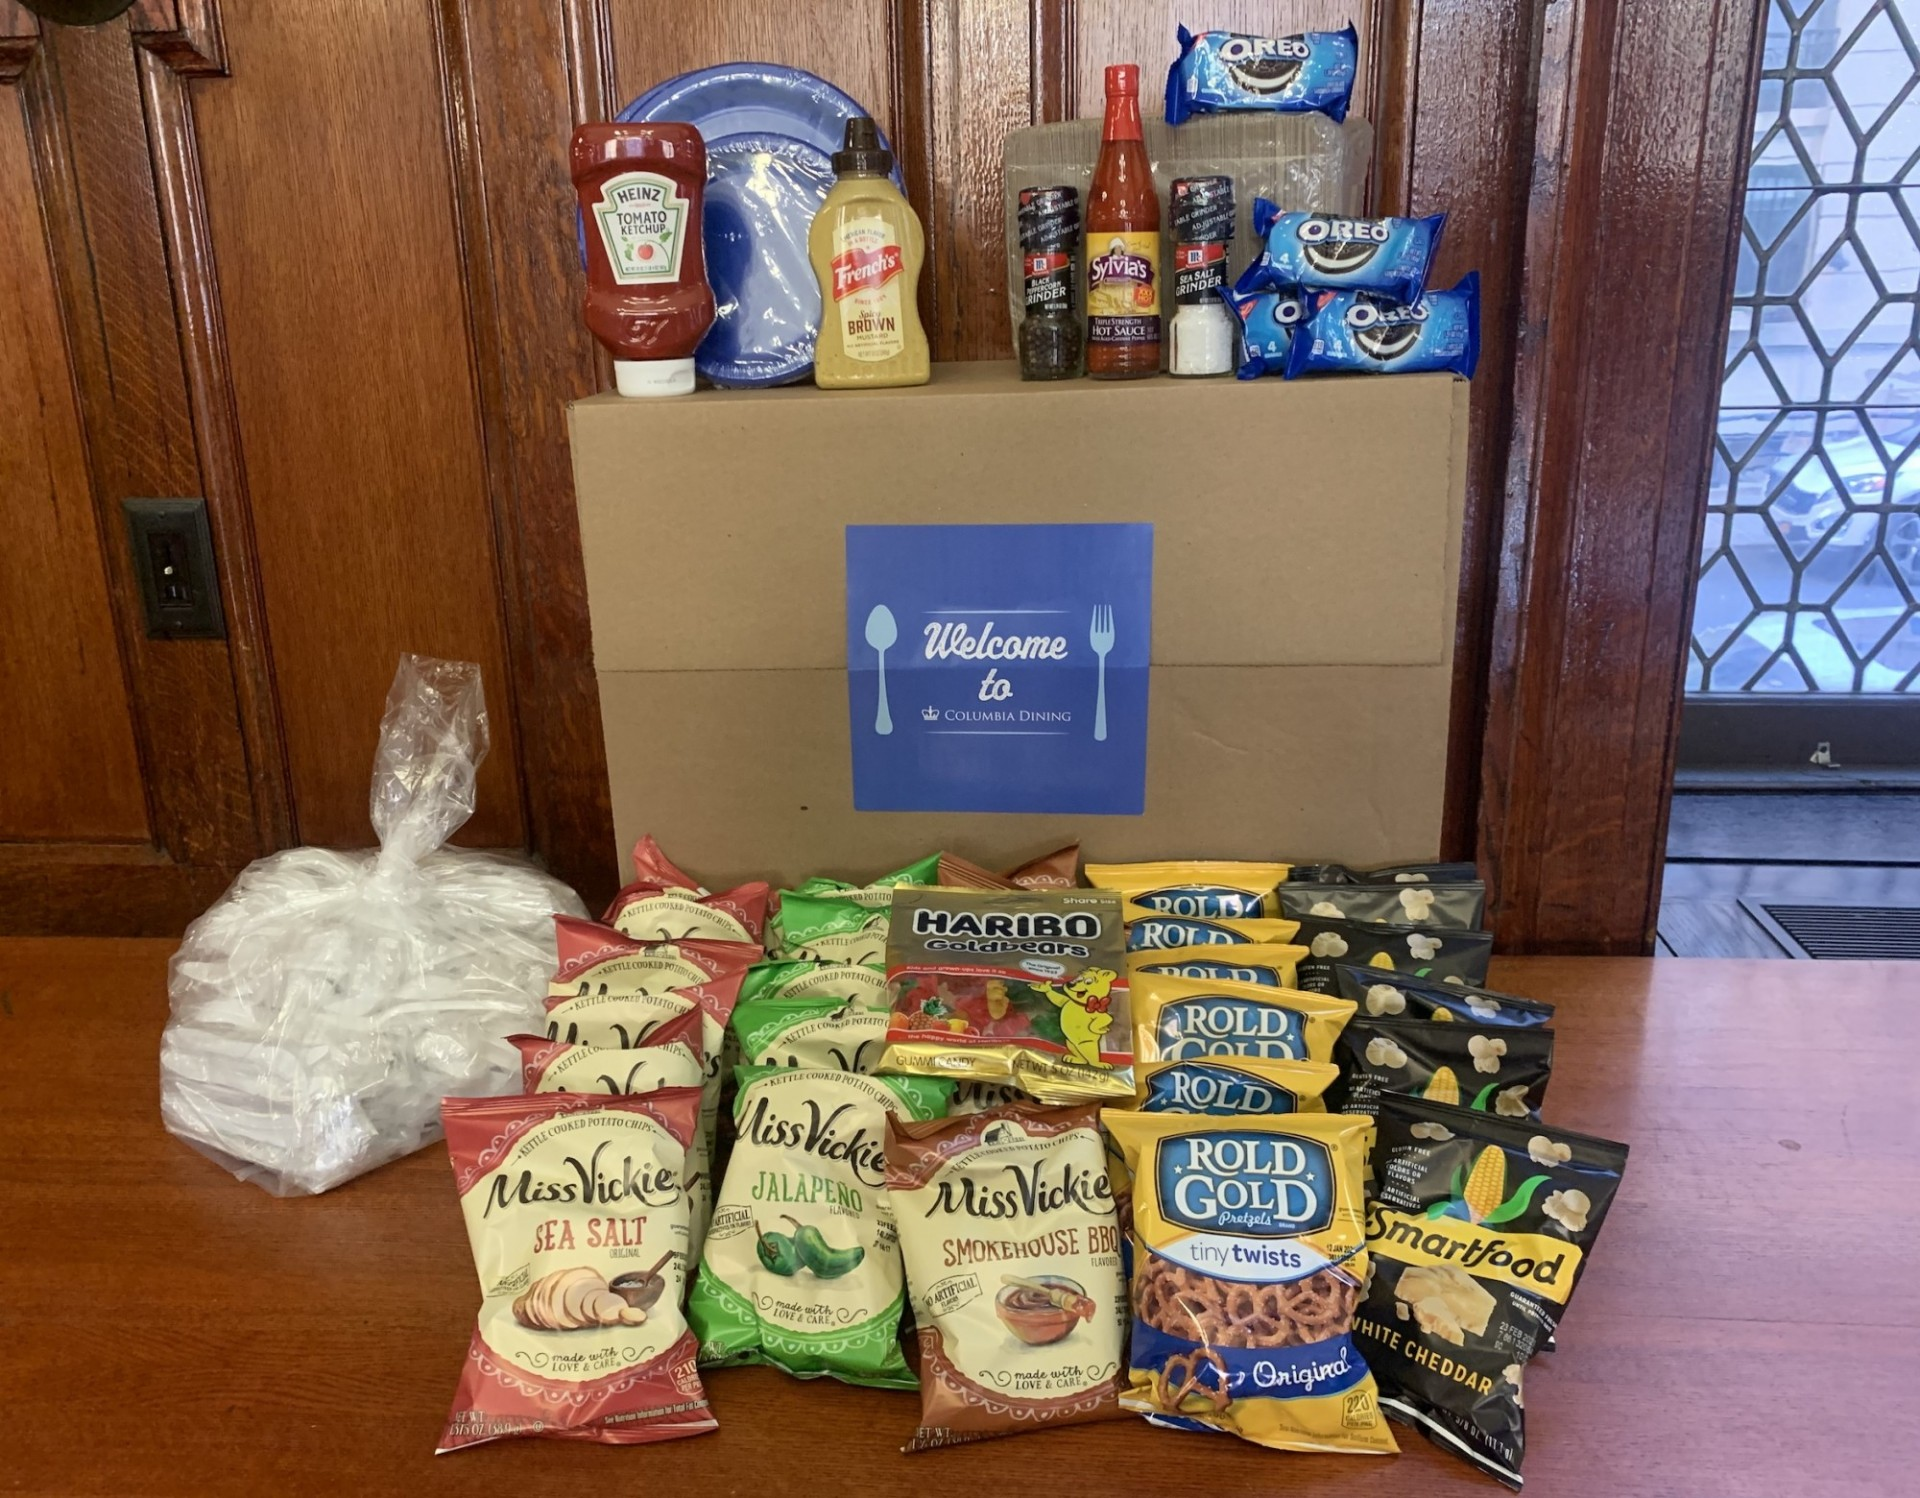 A Welcome Columbia Dining Box with all of its contents - snacks, disposable flatware, condiments and more.